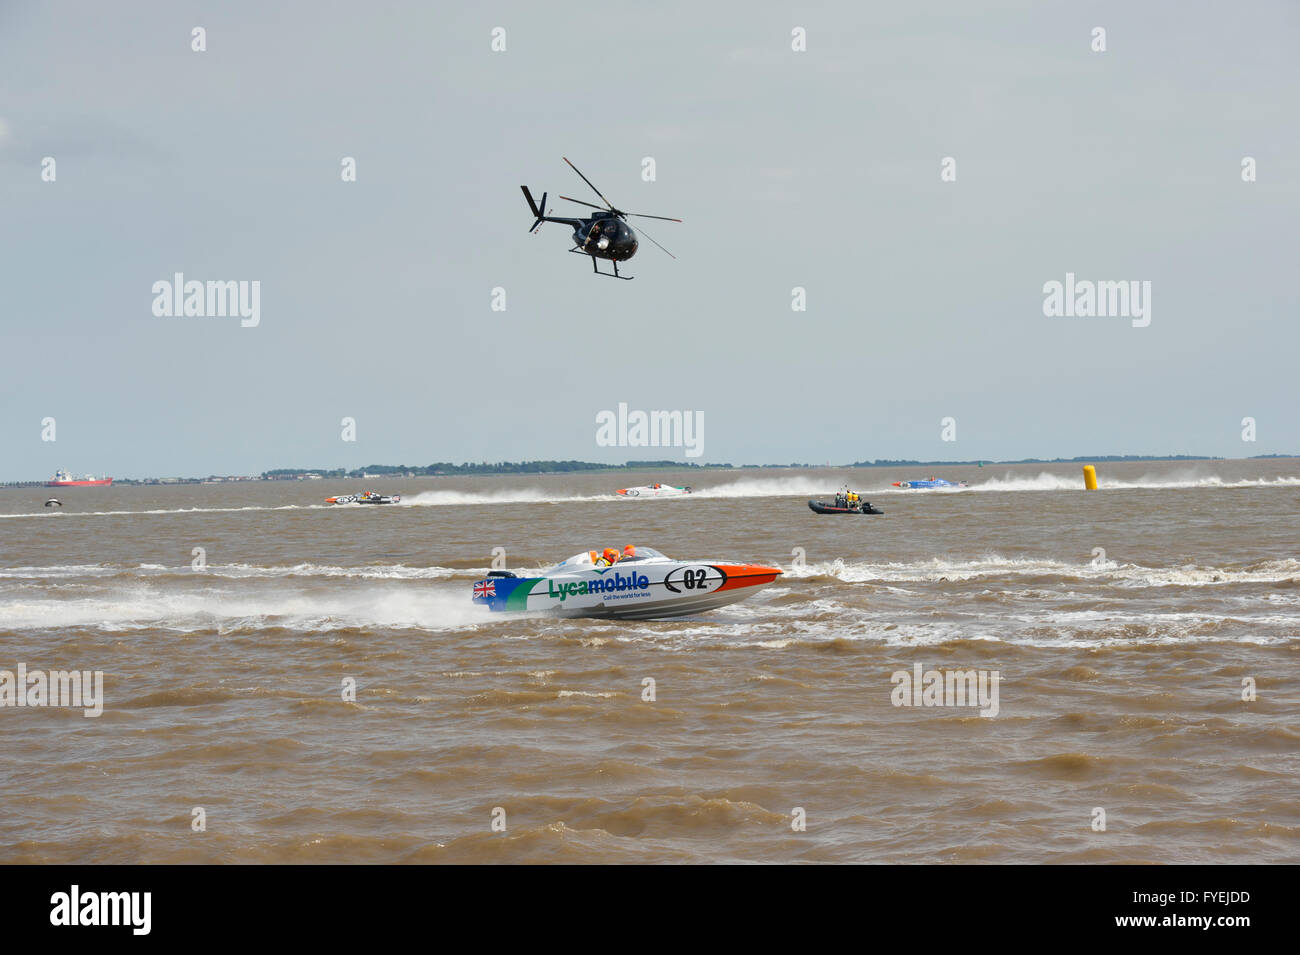 P1 Superstock powerboat racing along the Humber past the Marina in the city of Hull being filmed from a helicopter - Stock Image